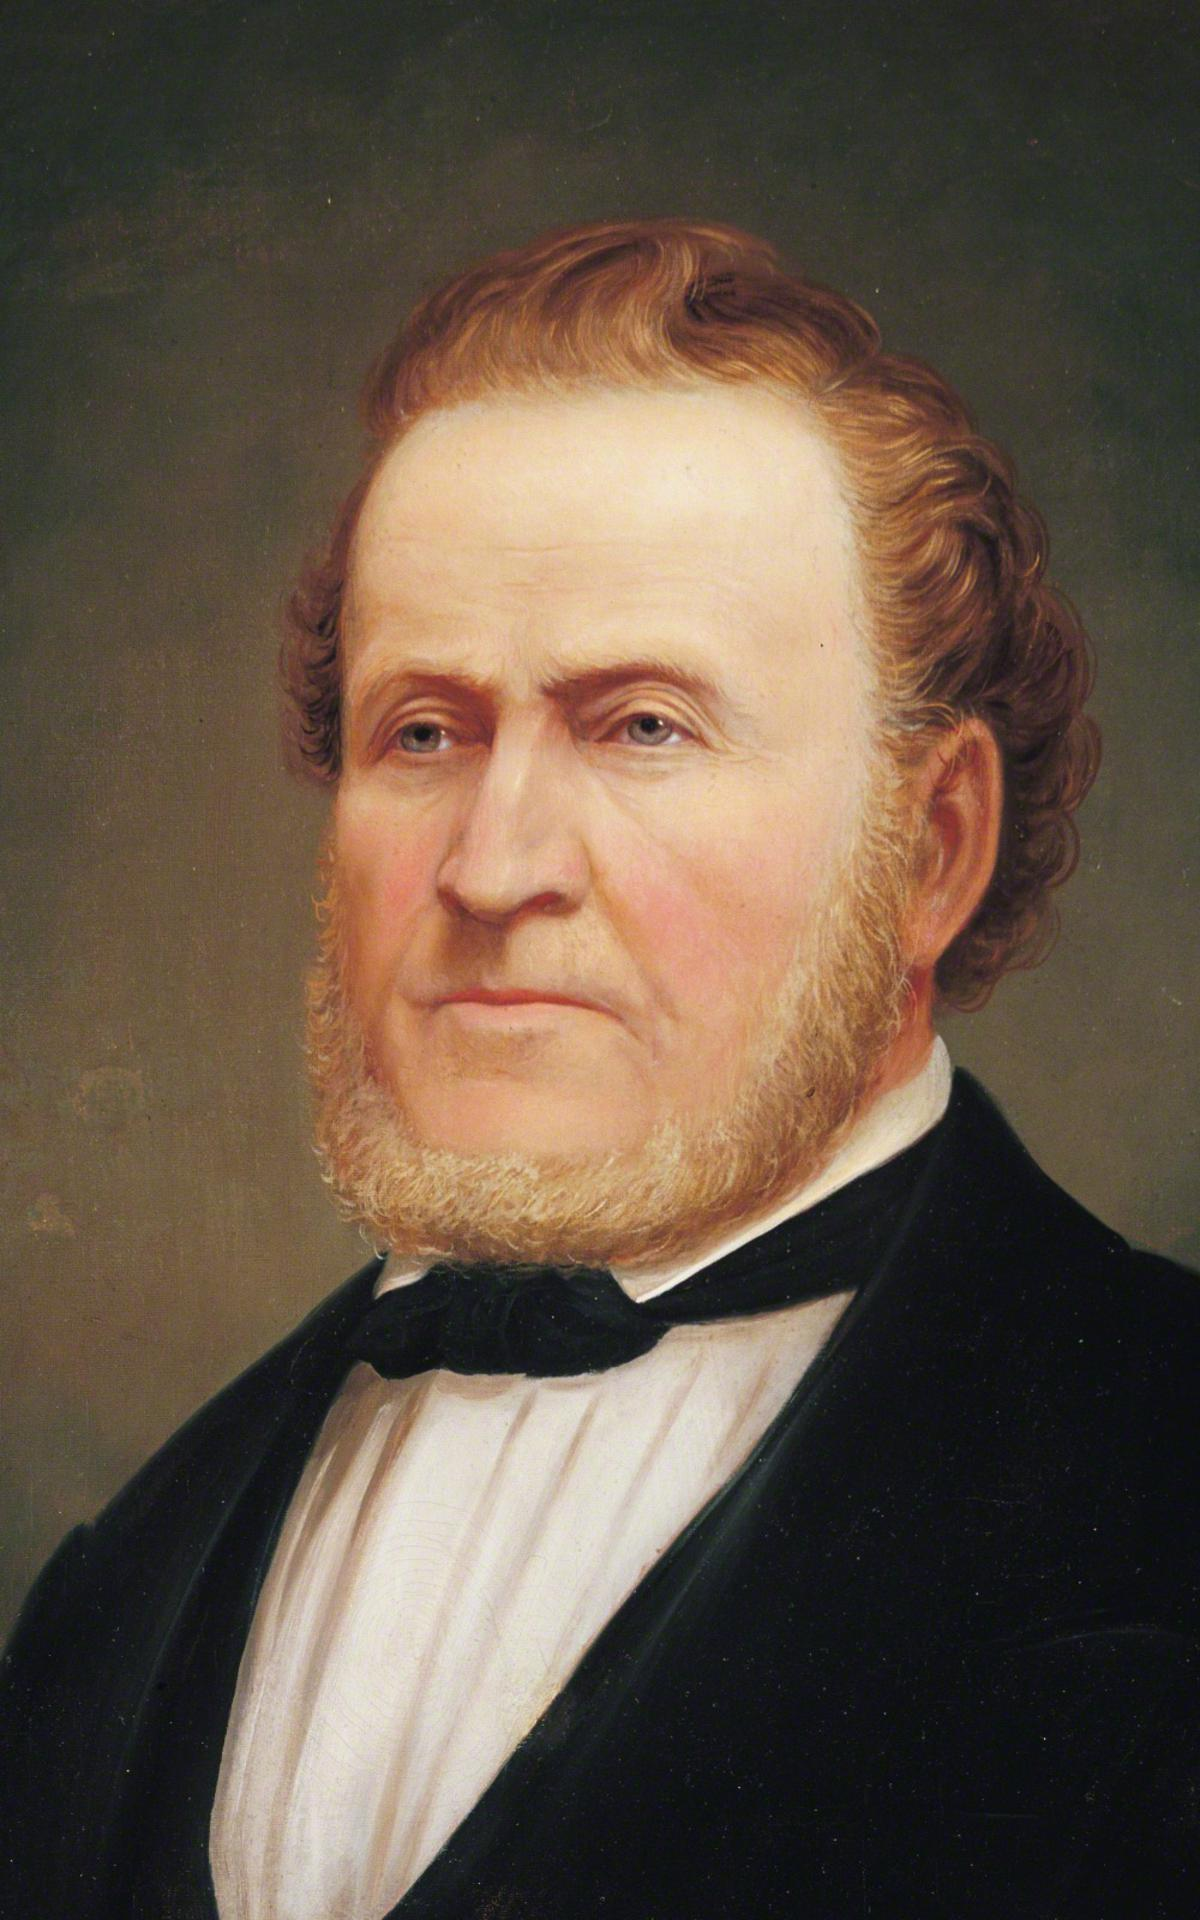 The Prophet Brigham Young was a carpenter by trade, and was known as a builder. He oversaw construction of many buildings, including the Mormon Tabernacle in Salt Lake City.